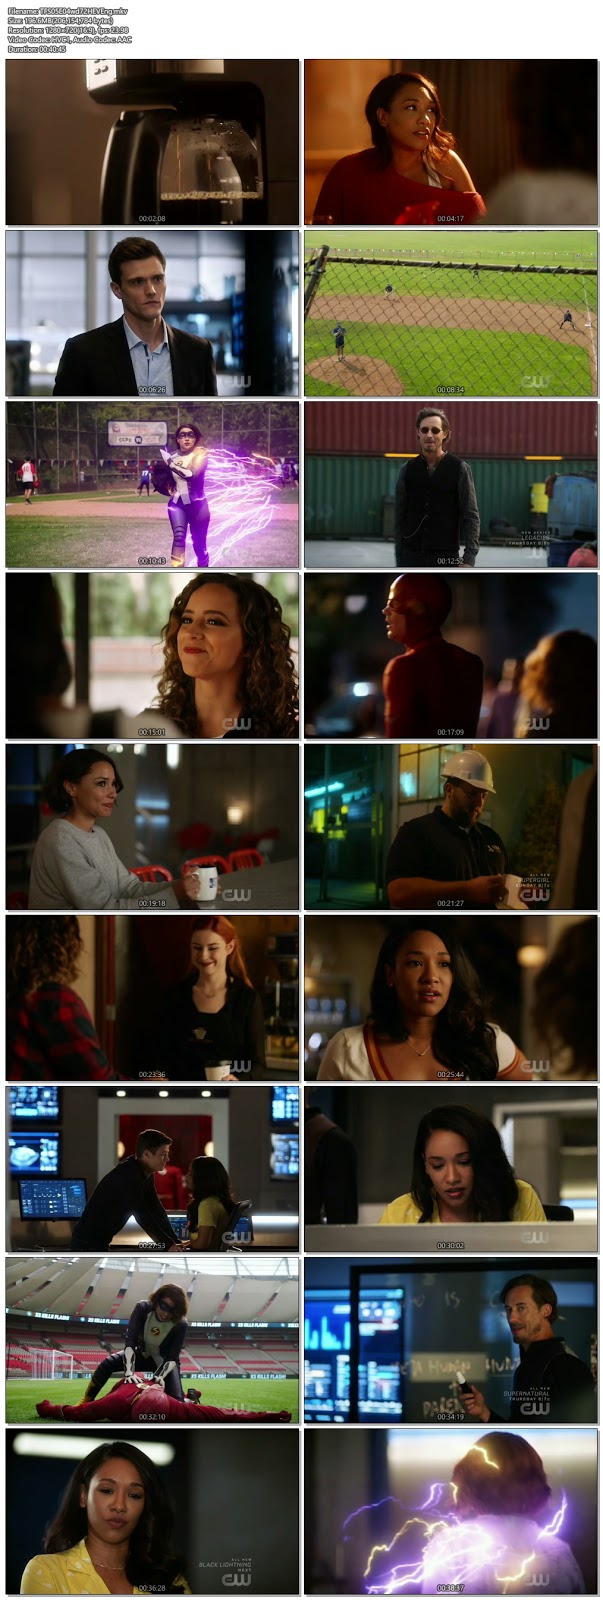 The Flash S05 Episode 04 720p HDTV 200MB ESub x265 HEVC, hollwood tv series The Flash S05 Episode 04 720p hdtv tv show hevc x265 hdrip 200mb 250mb free download or watch online at world4ufree.fun